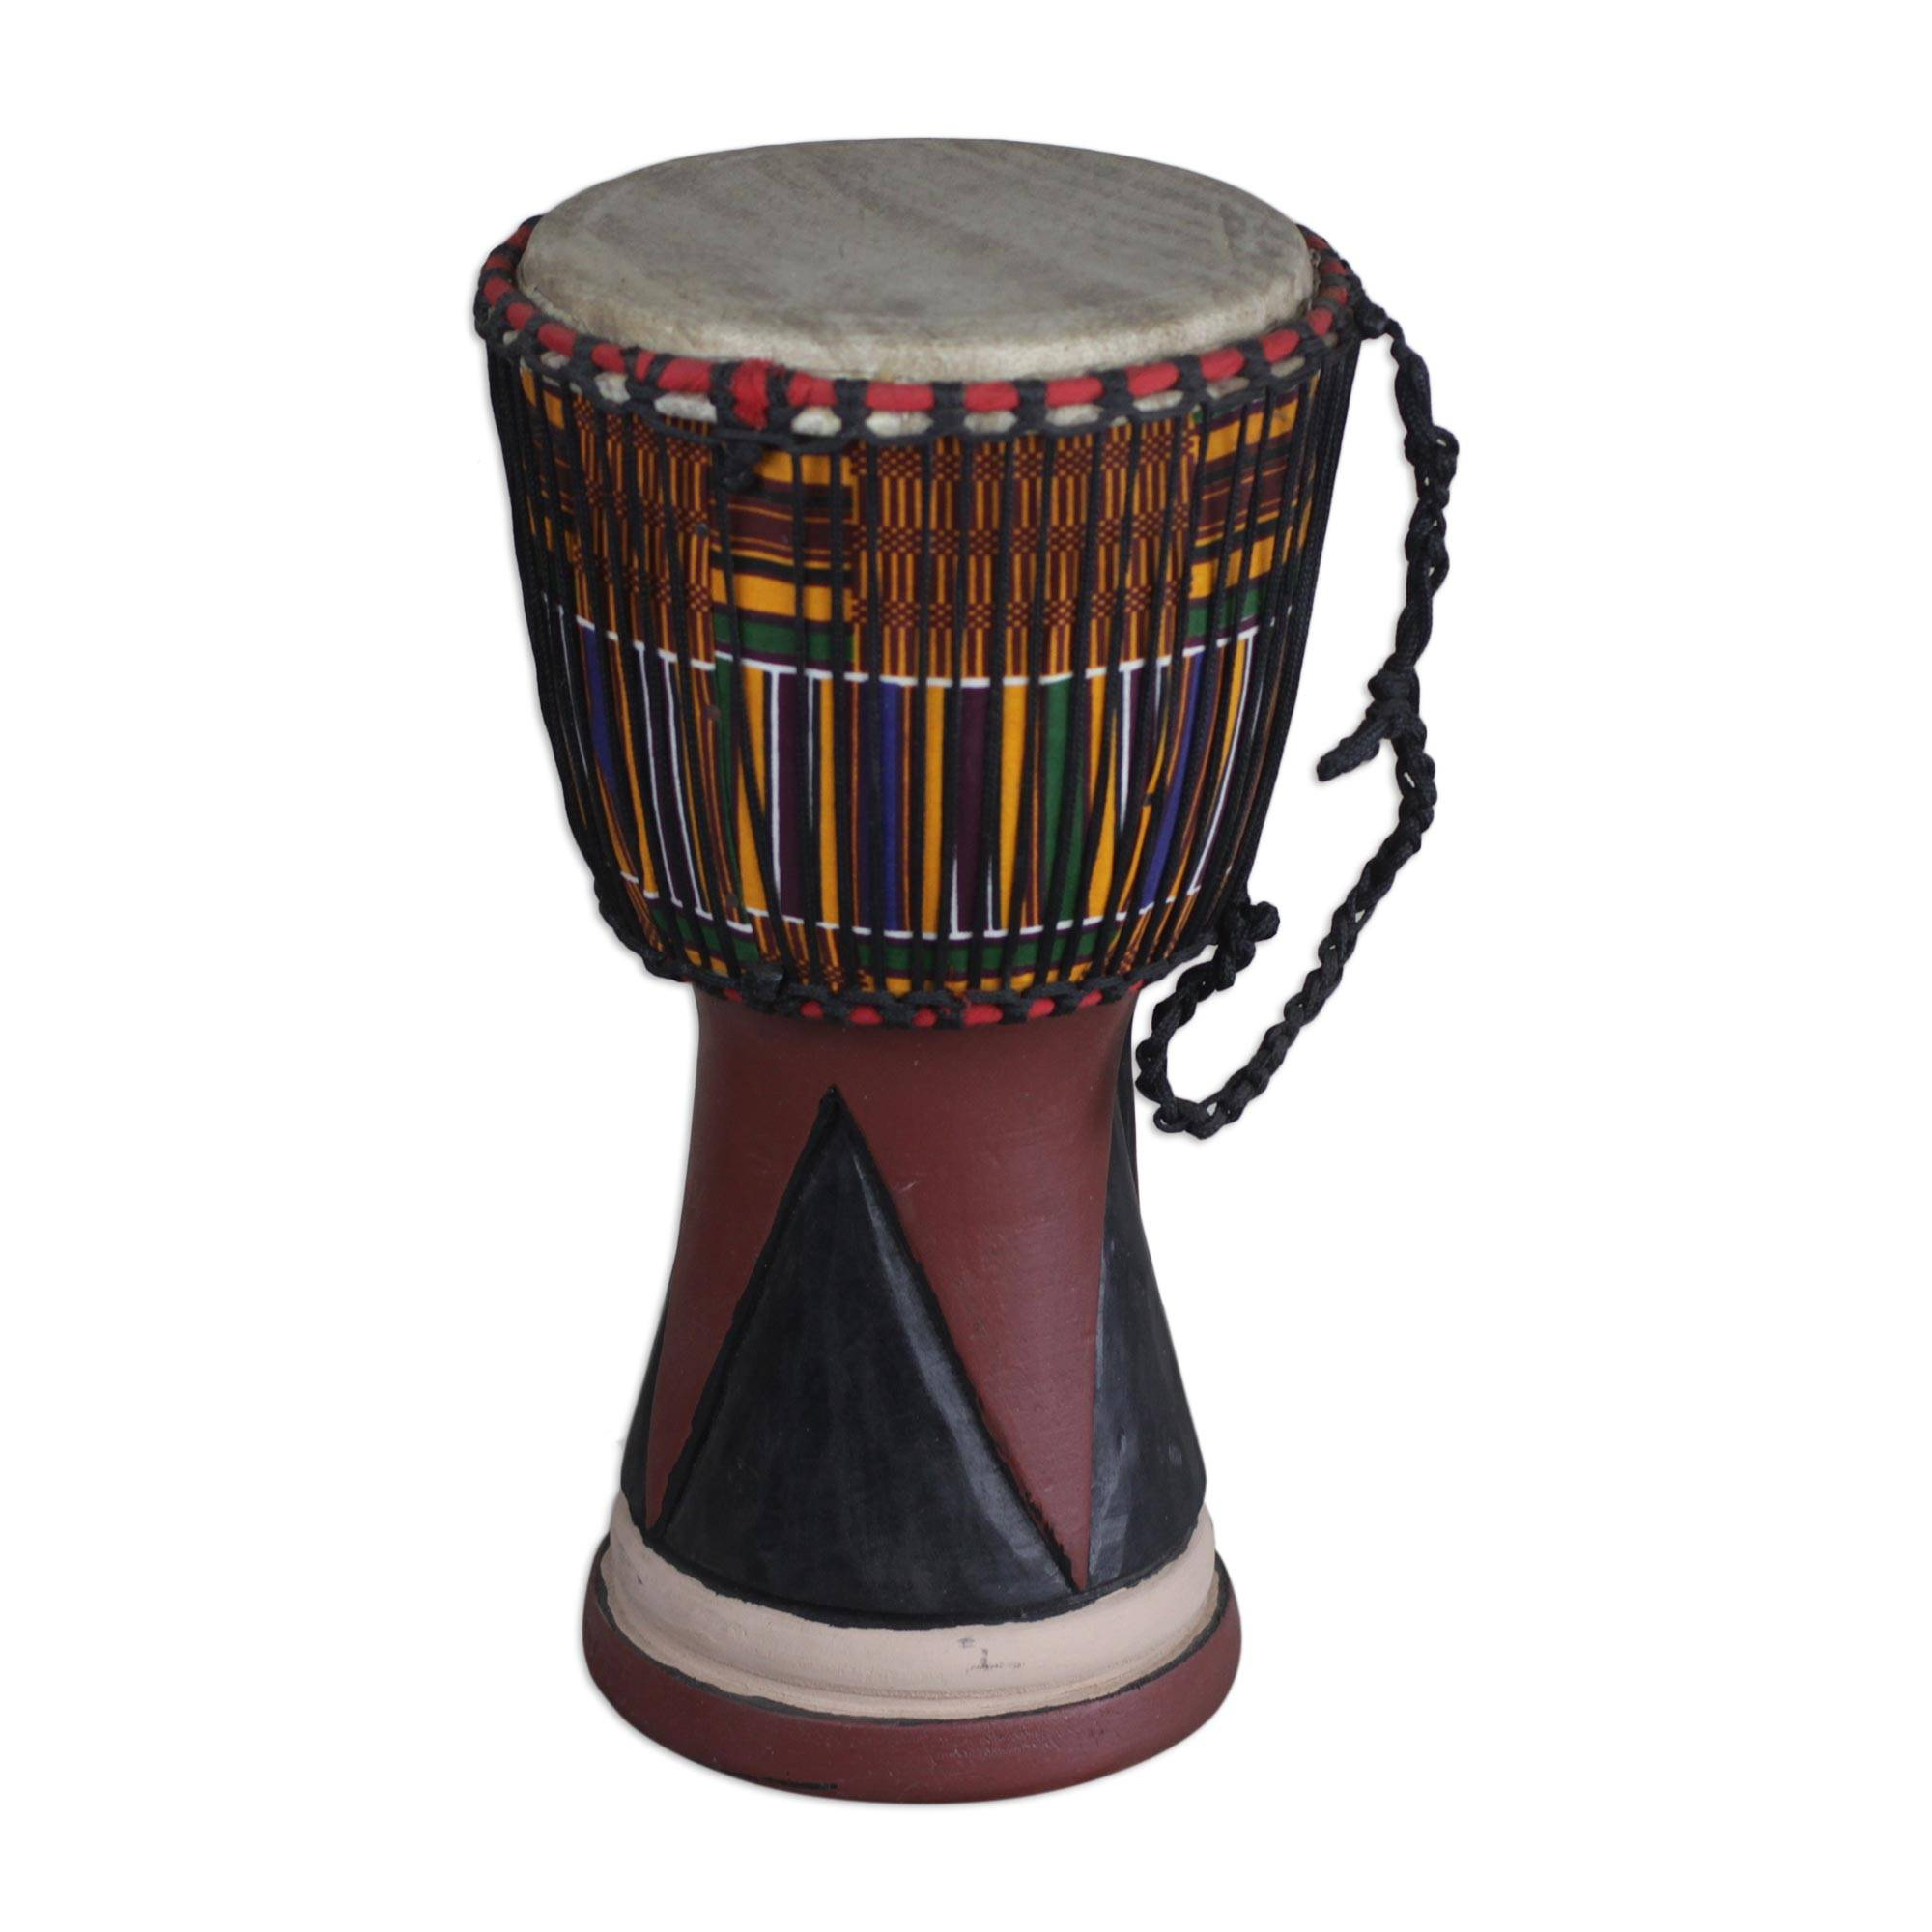 unicef market musical instruments frog drum accent tables wood djembe from the past handcrafted west african wooden bedside toronto hobby lobby furniture decorative wine rack home